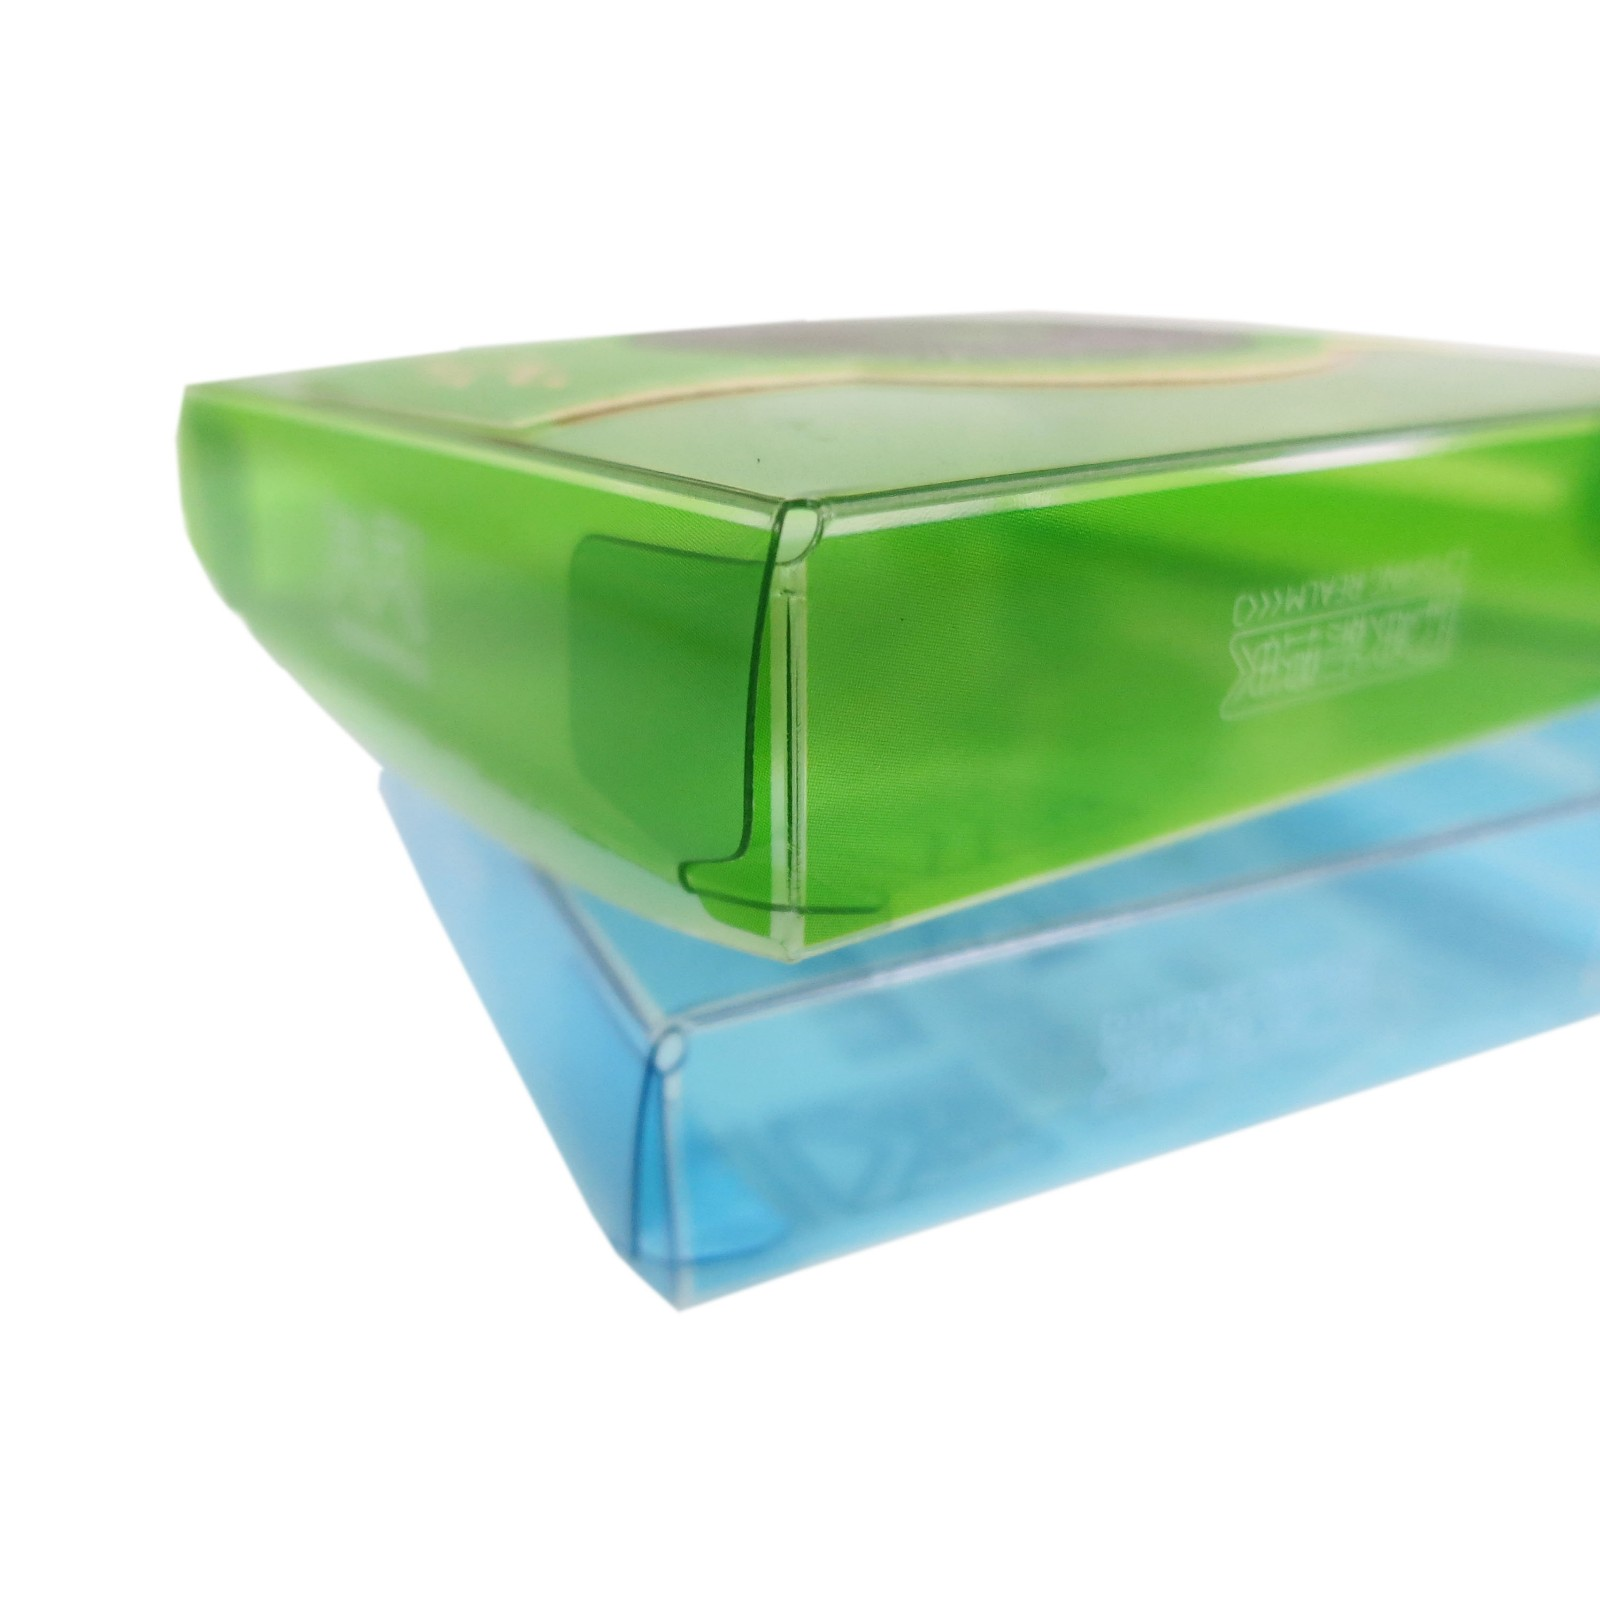 retail plastic box packaging retail for wholesale for food-7